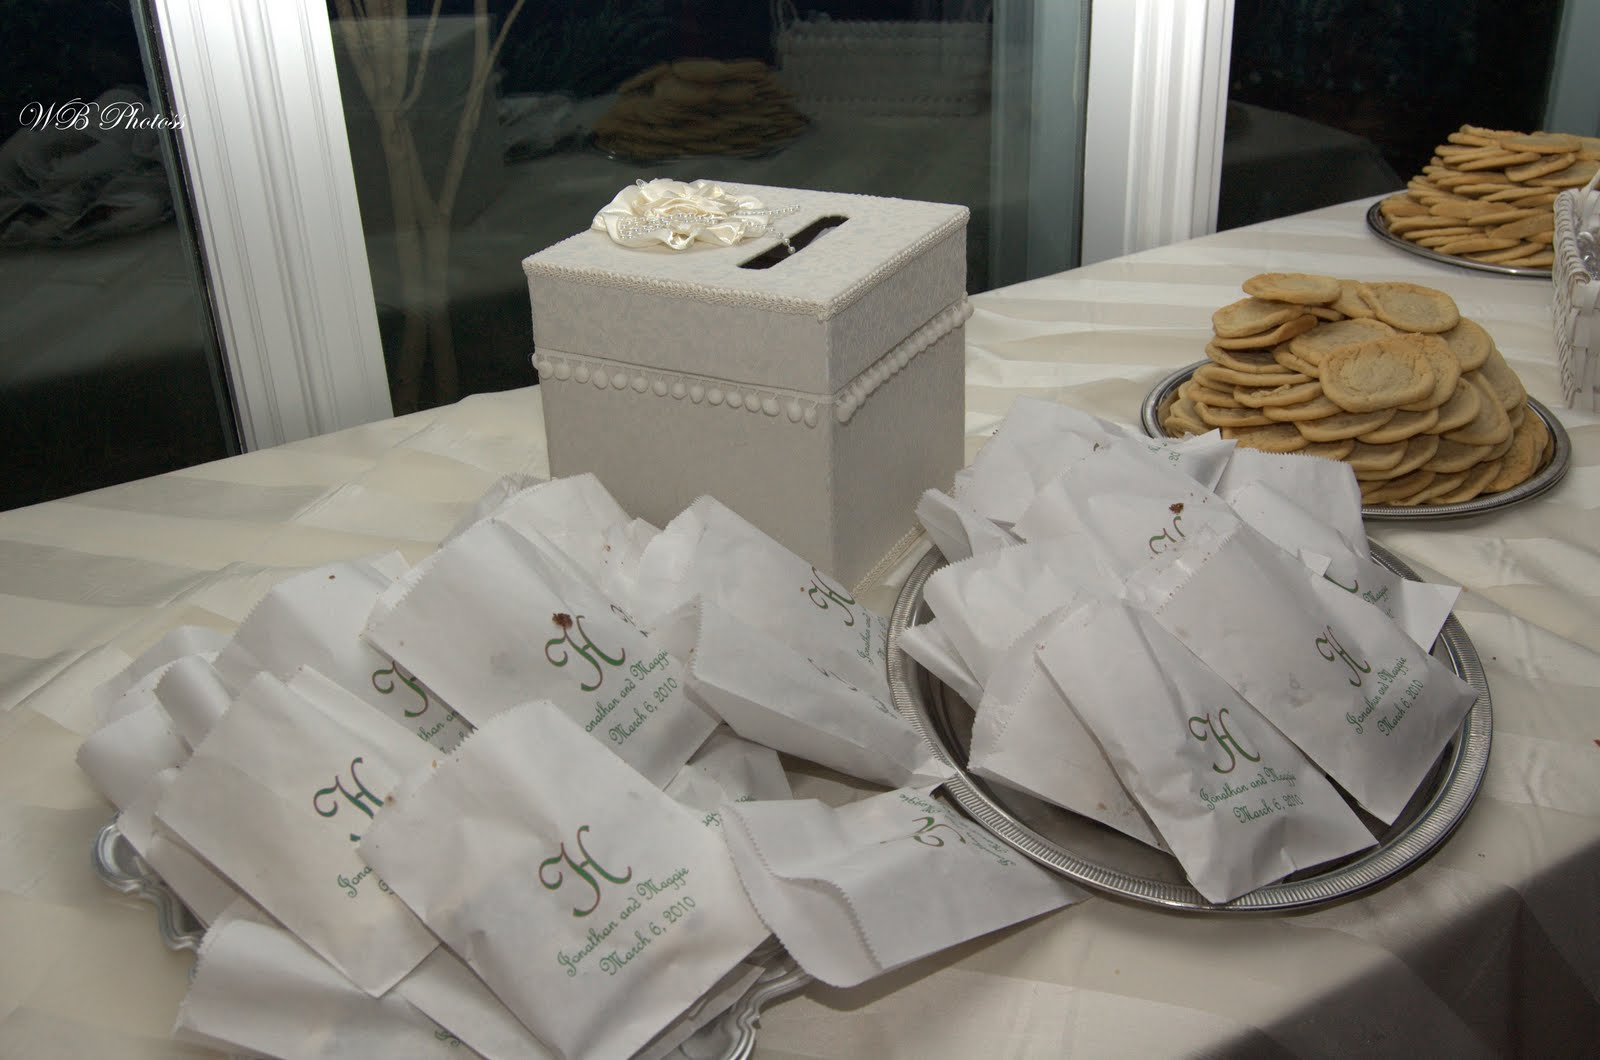 The Willrich Wedding Planner s Blog  Wedding Cake Bags Here s an old trend that is making a reappearance  The trend is wax lined cake  bags for guests to take leftover cake home at the end of the night